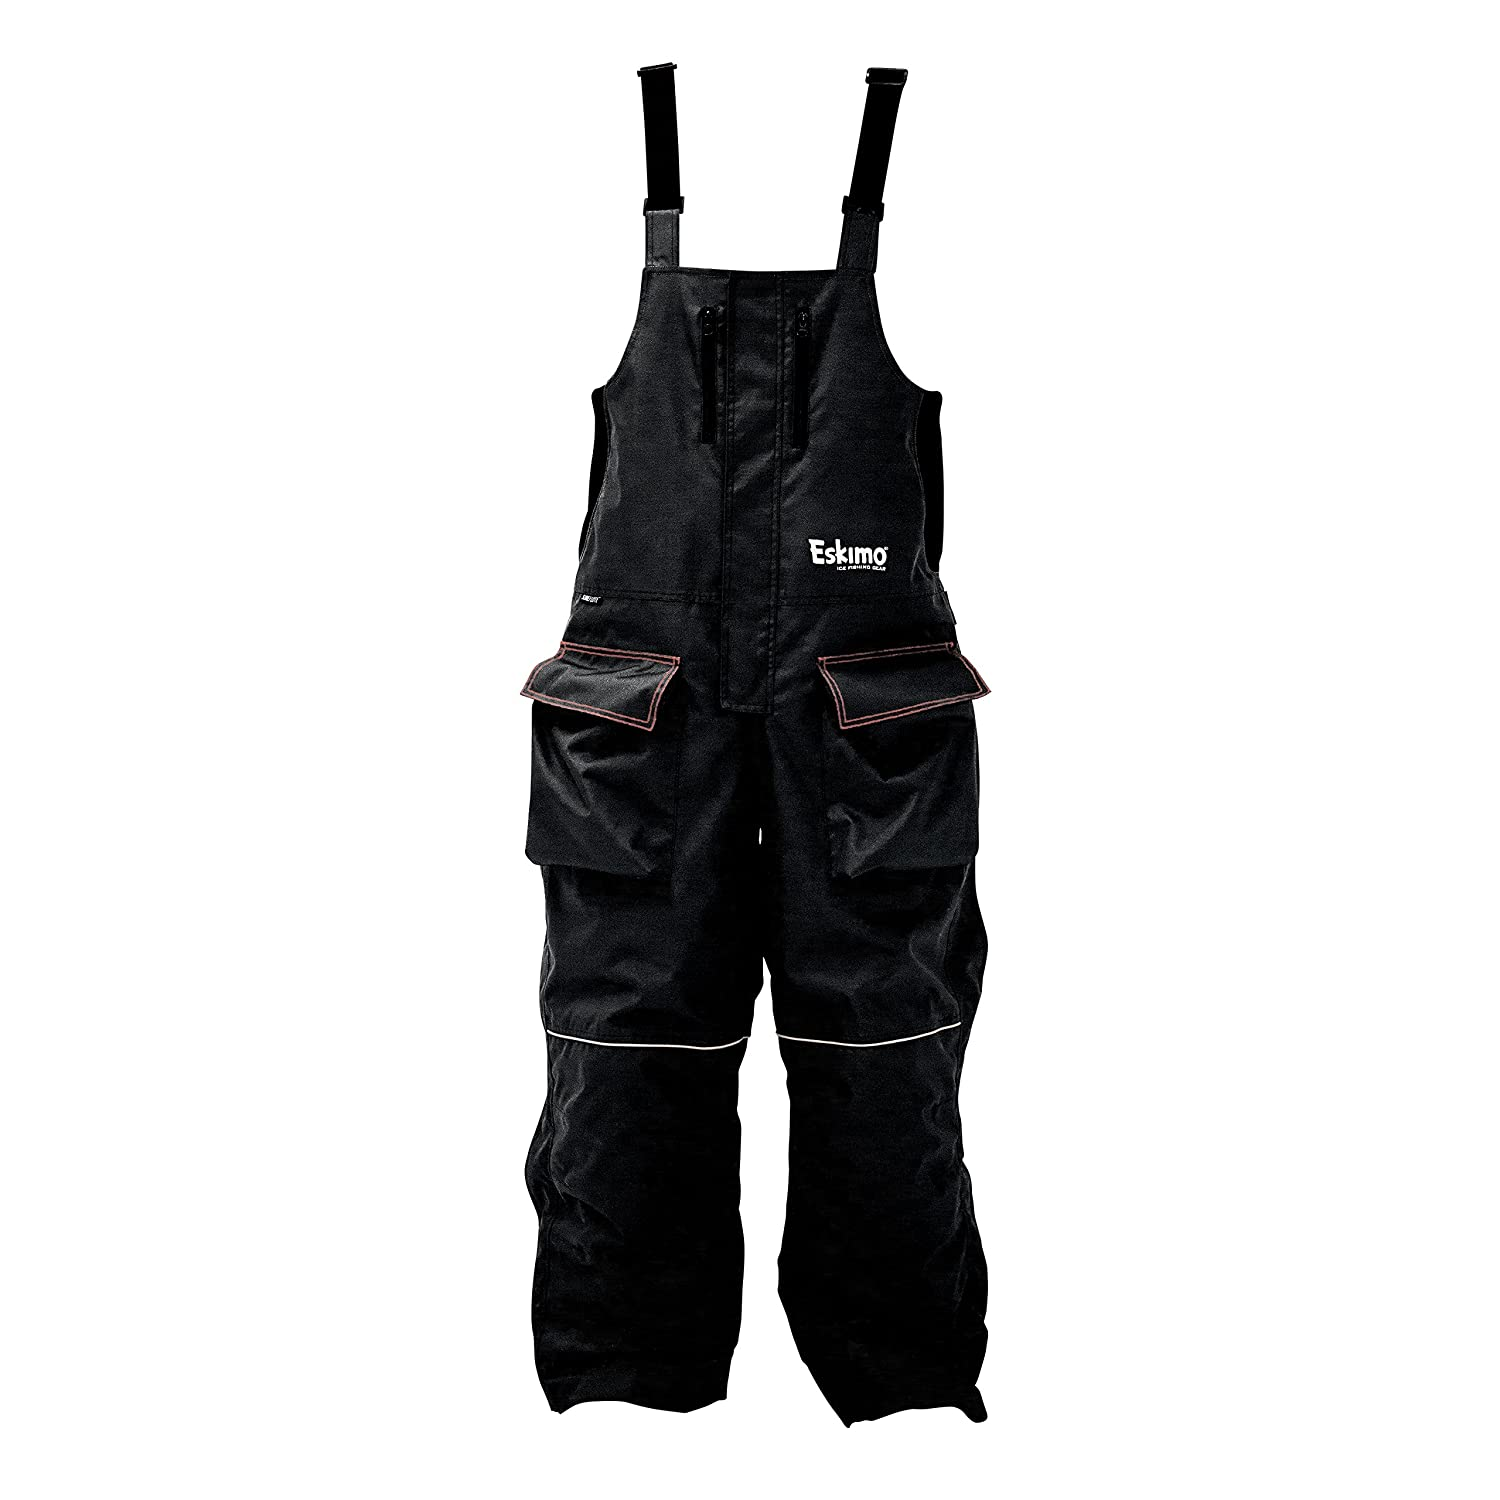 b3d2eb894c24 Looking At 10 Best Ice Fishing Bibs - Review 2019